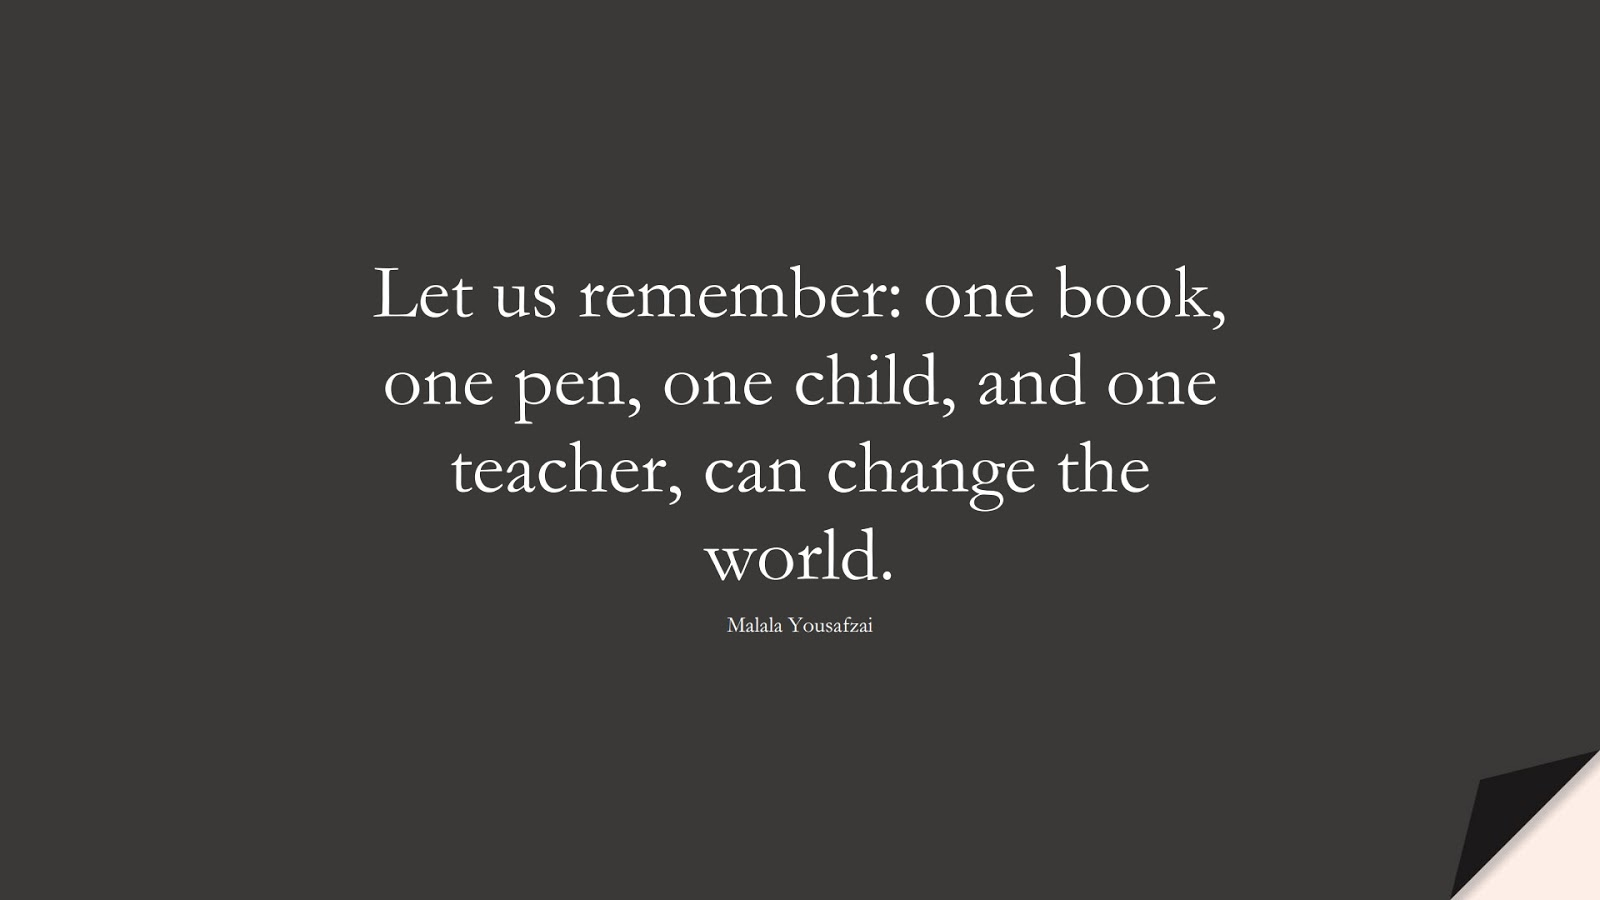 Let us remember: one book, one pen, one child, and one teacher, can change the world. (Malala Yousafzai);  #ChangeQuotes